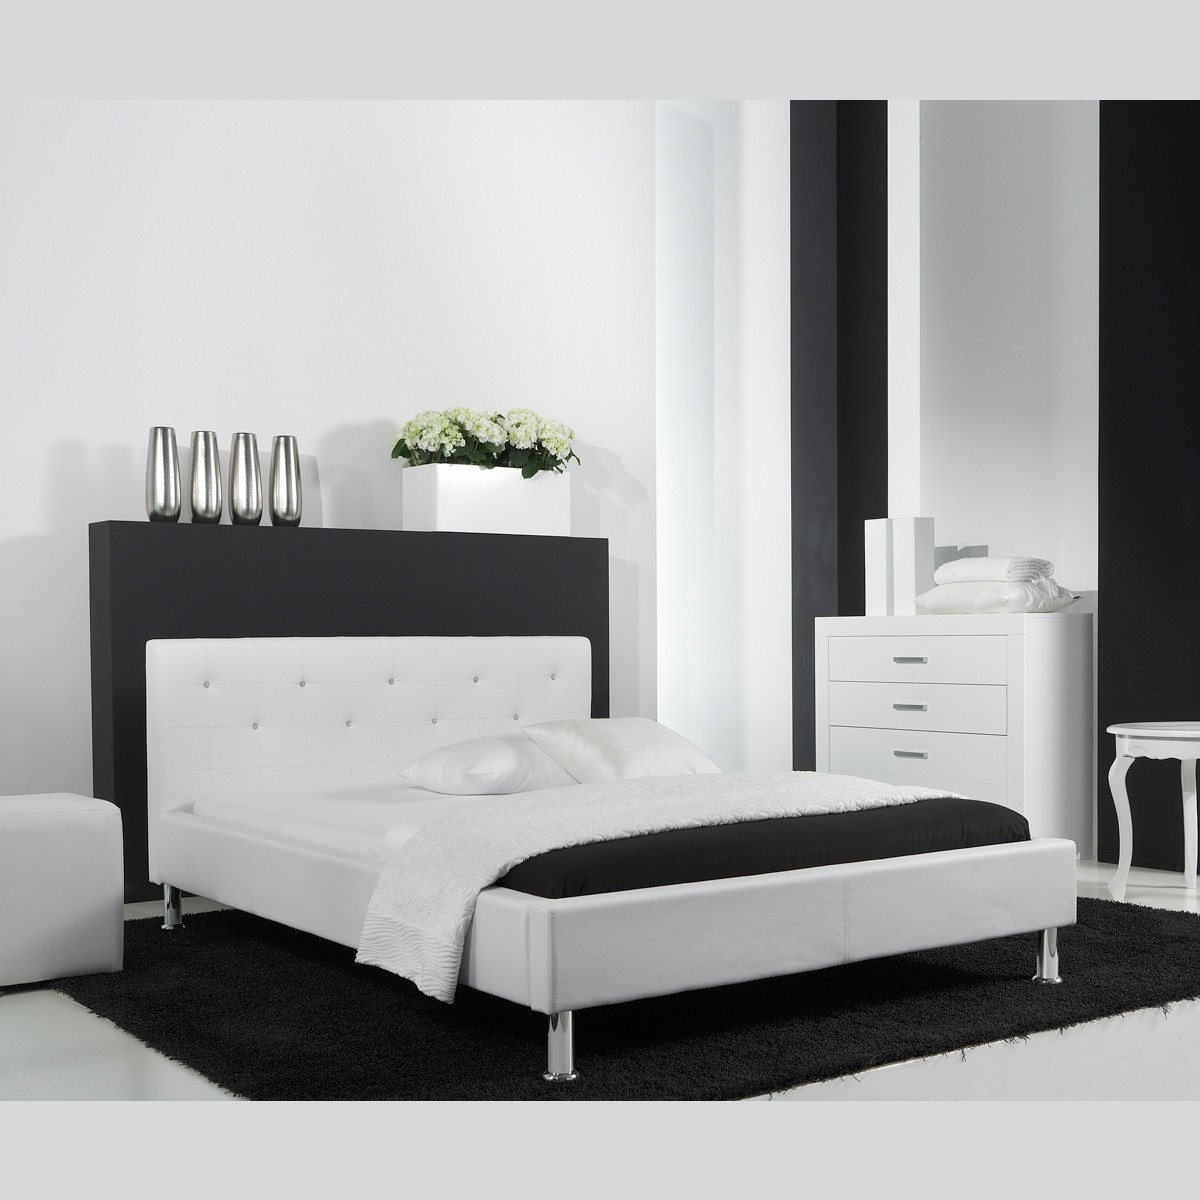 140x200 bett wei perfect bett with 140x200 bett wei good bett online kaufen otto with 140x200. Black Bedroom Furniture Sets. Home Design Ideas